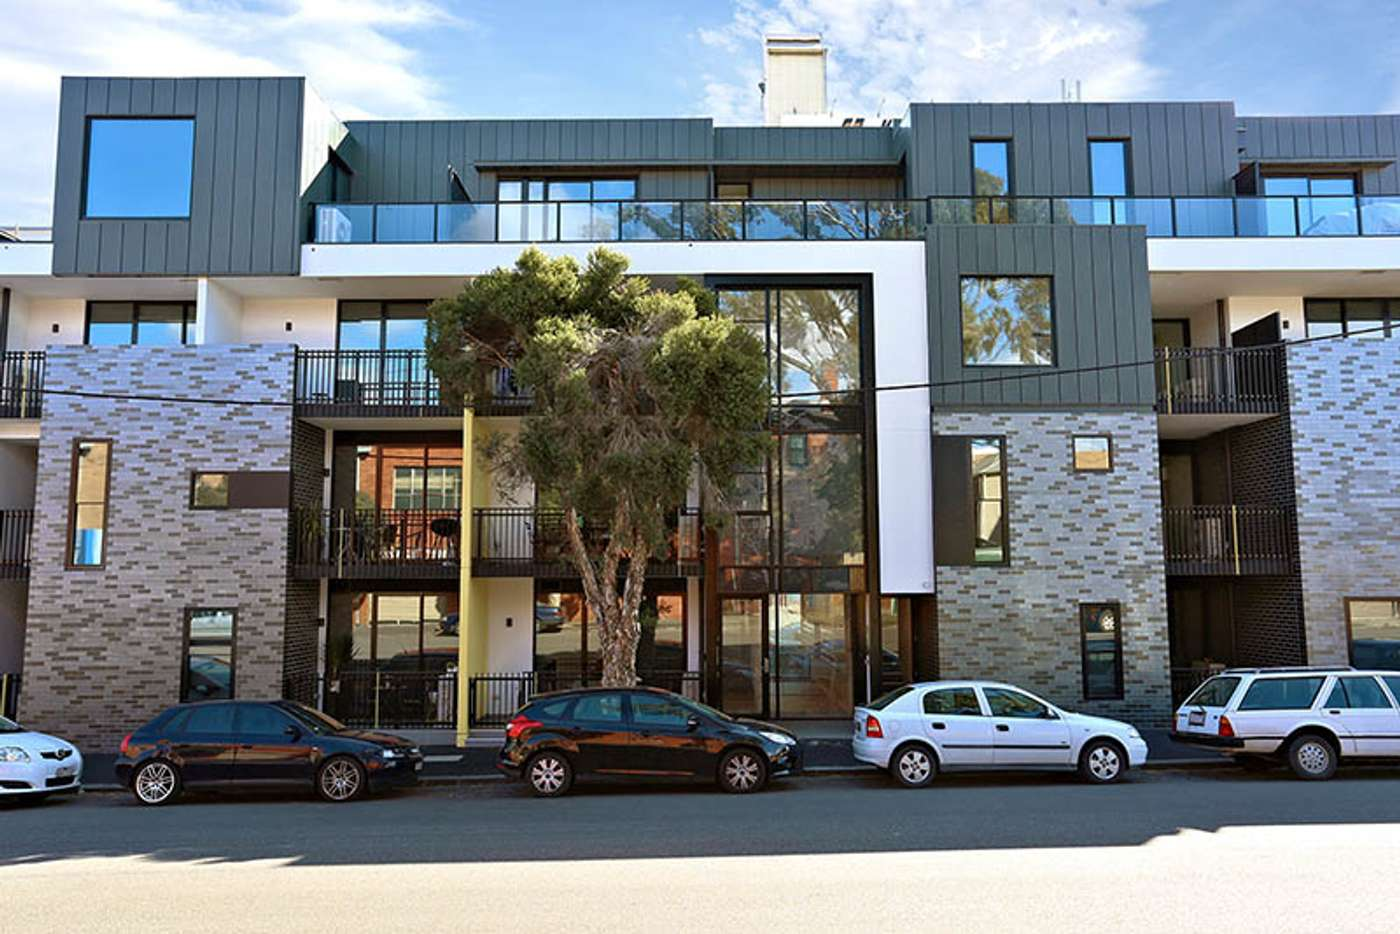 Main view of Homely apartment listing, 206/5-13 Stawell St, North Melbourne VIC 3051